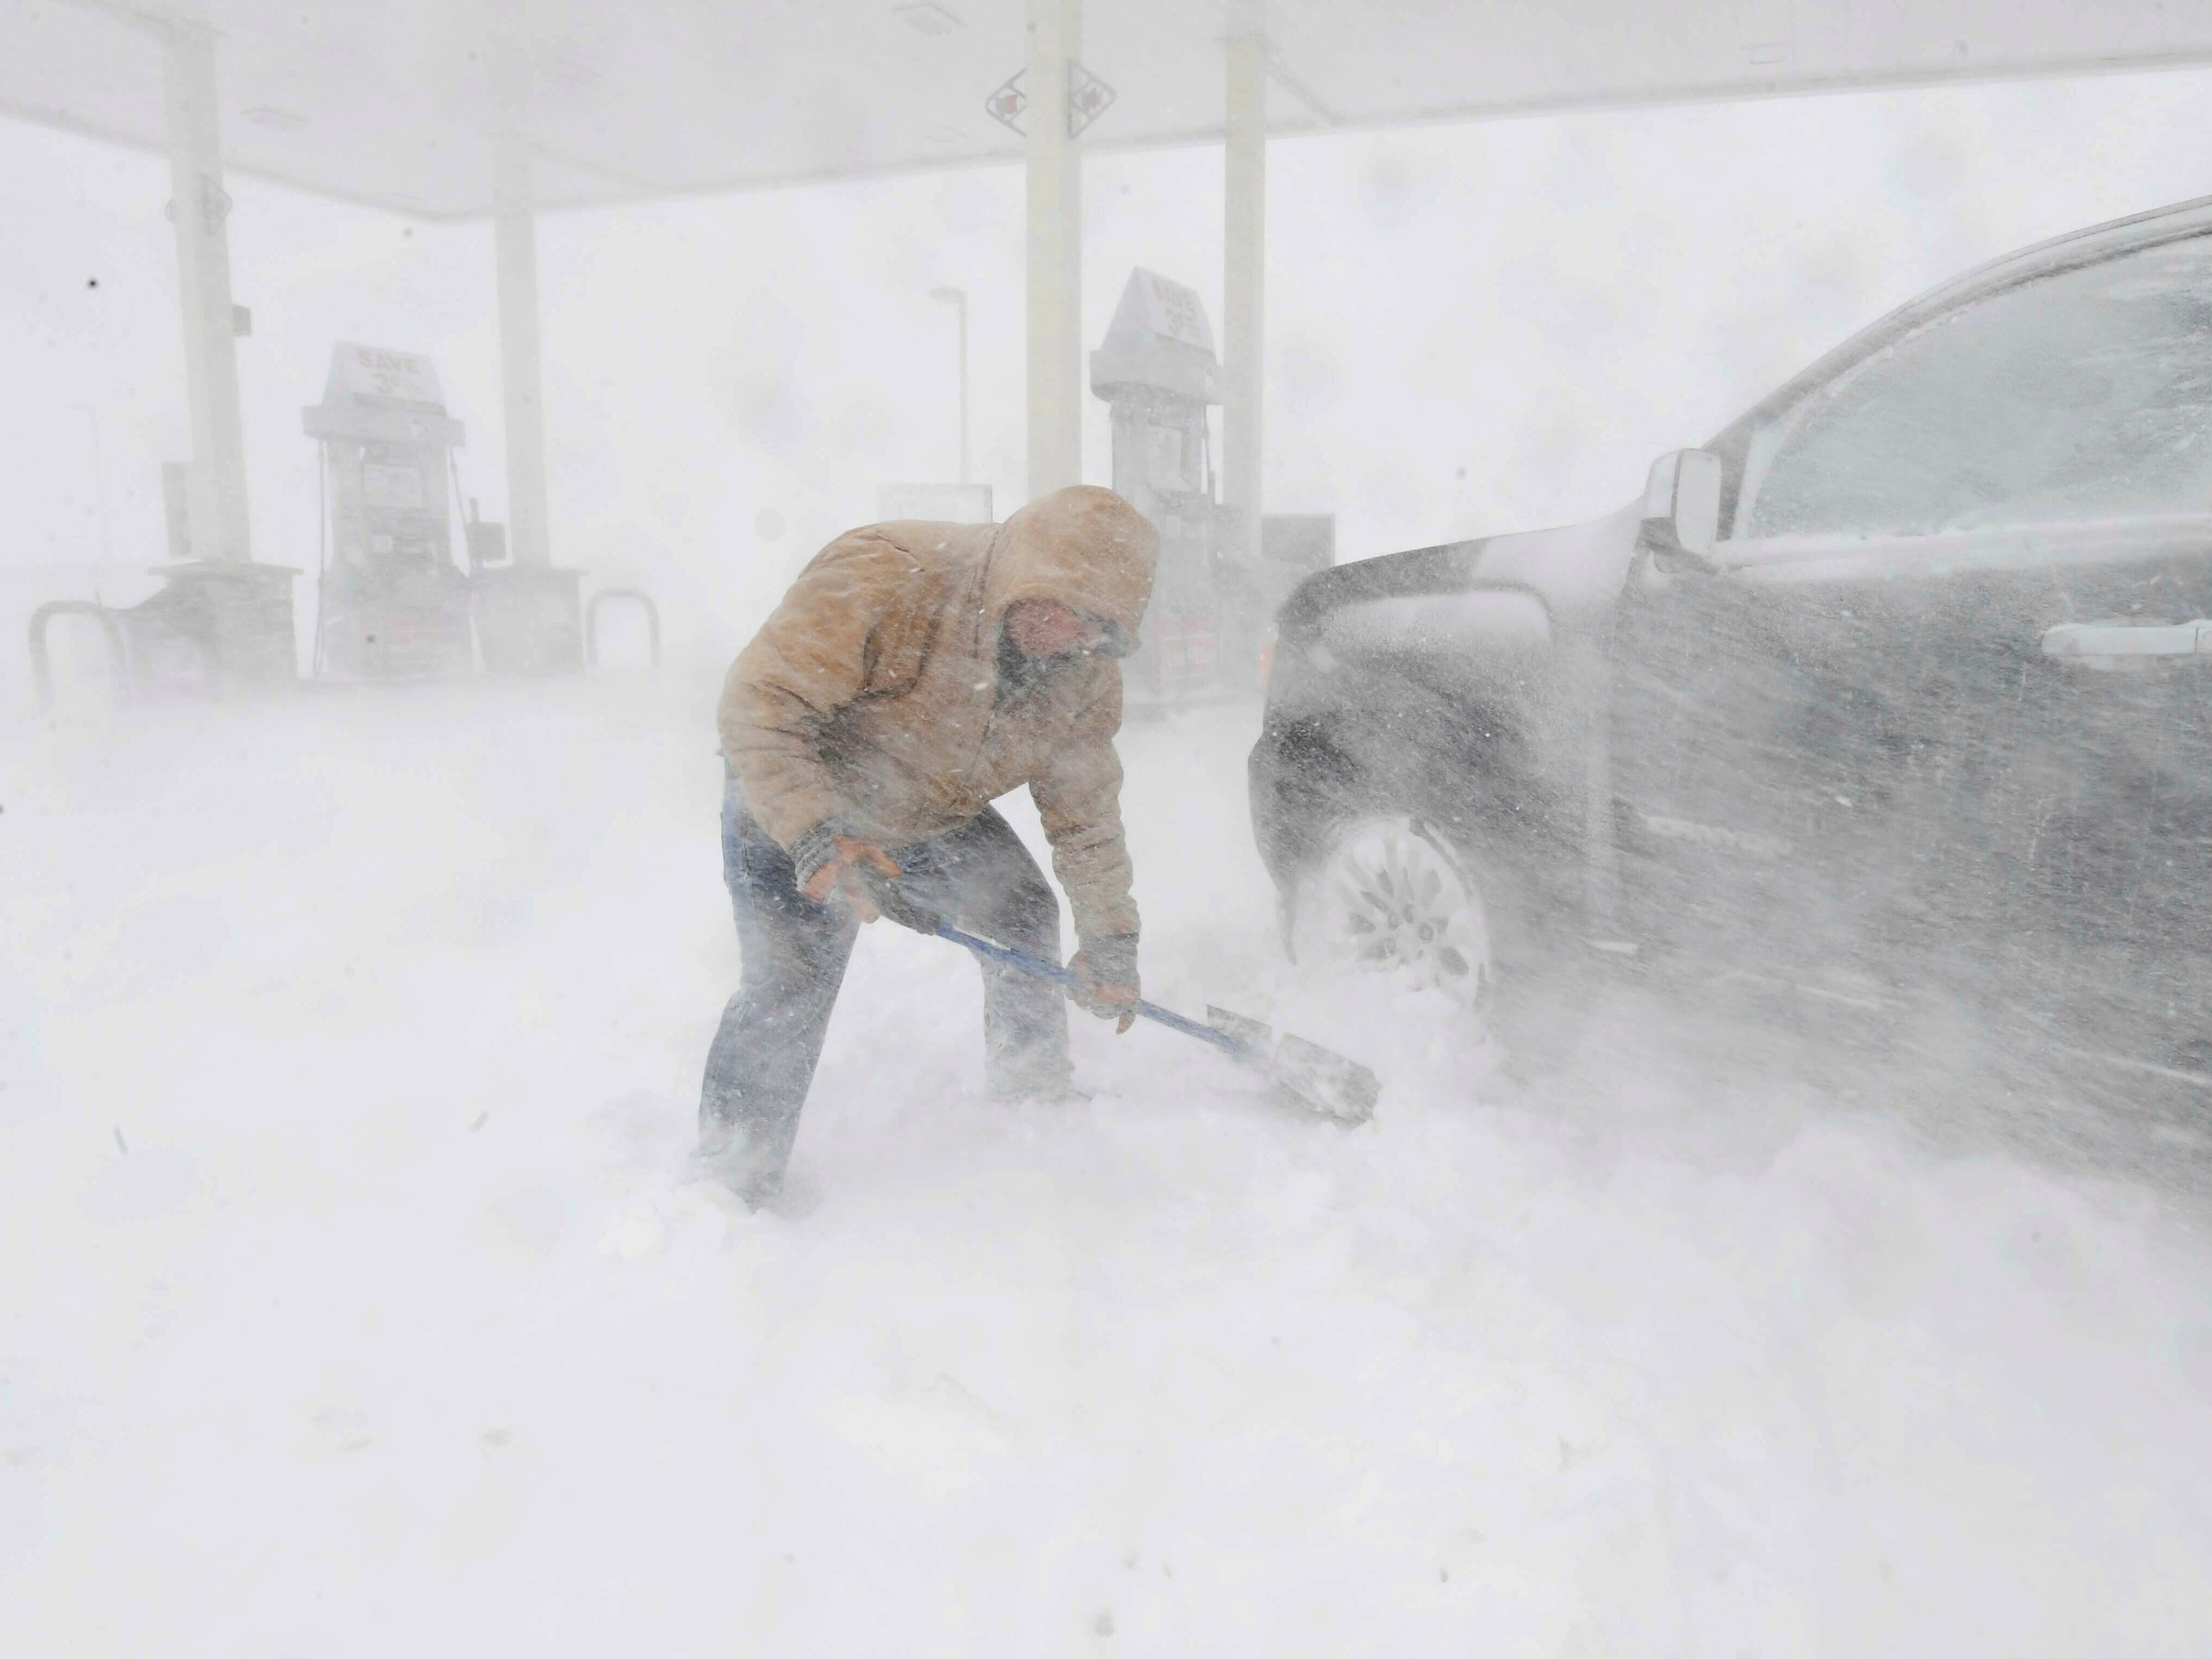 Greg Giannini needed to get gas for his generator, because the lights were flickering at his home and he was afraid he was going to lose power. Even though he has four wheel drive, his car got stuck at the pumps and he was trying to dig out to get home as the blizzard swirled around him. He was stuck near North Gate Blvd. in Colorado Springs, Colorado, on Wednesday, March 13, 2019.